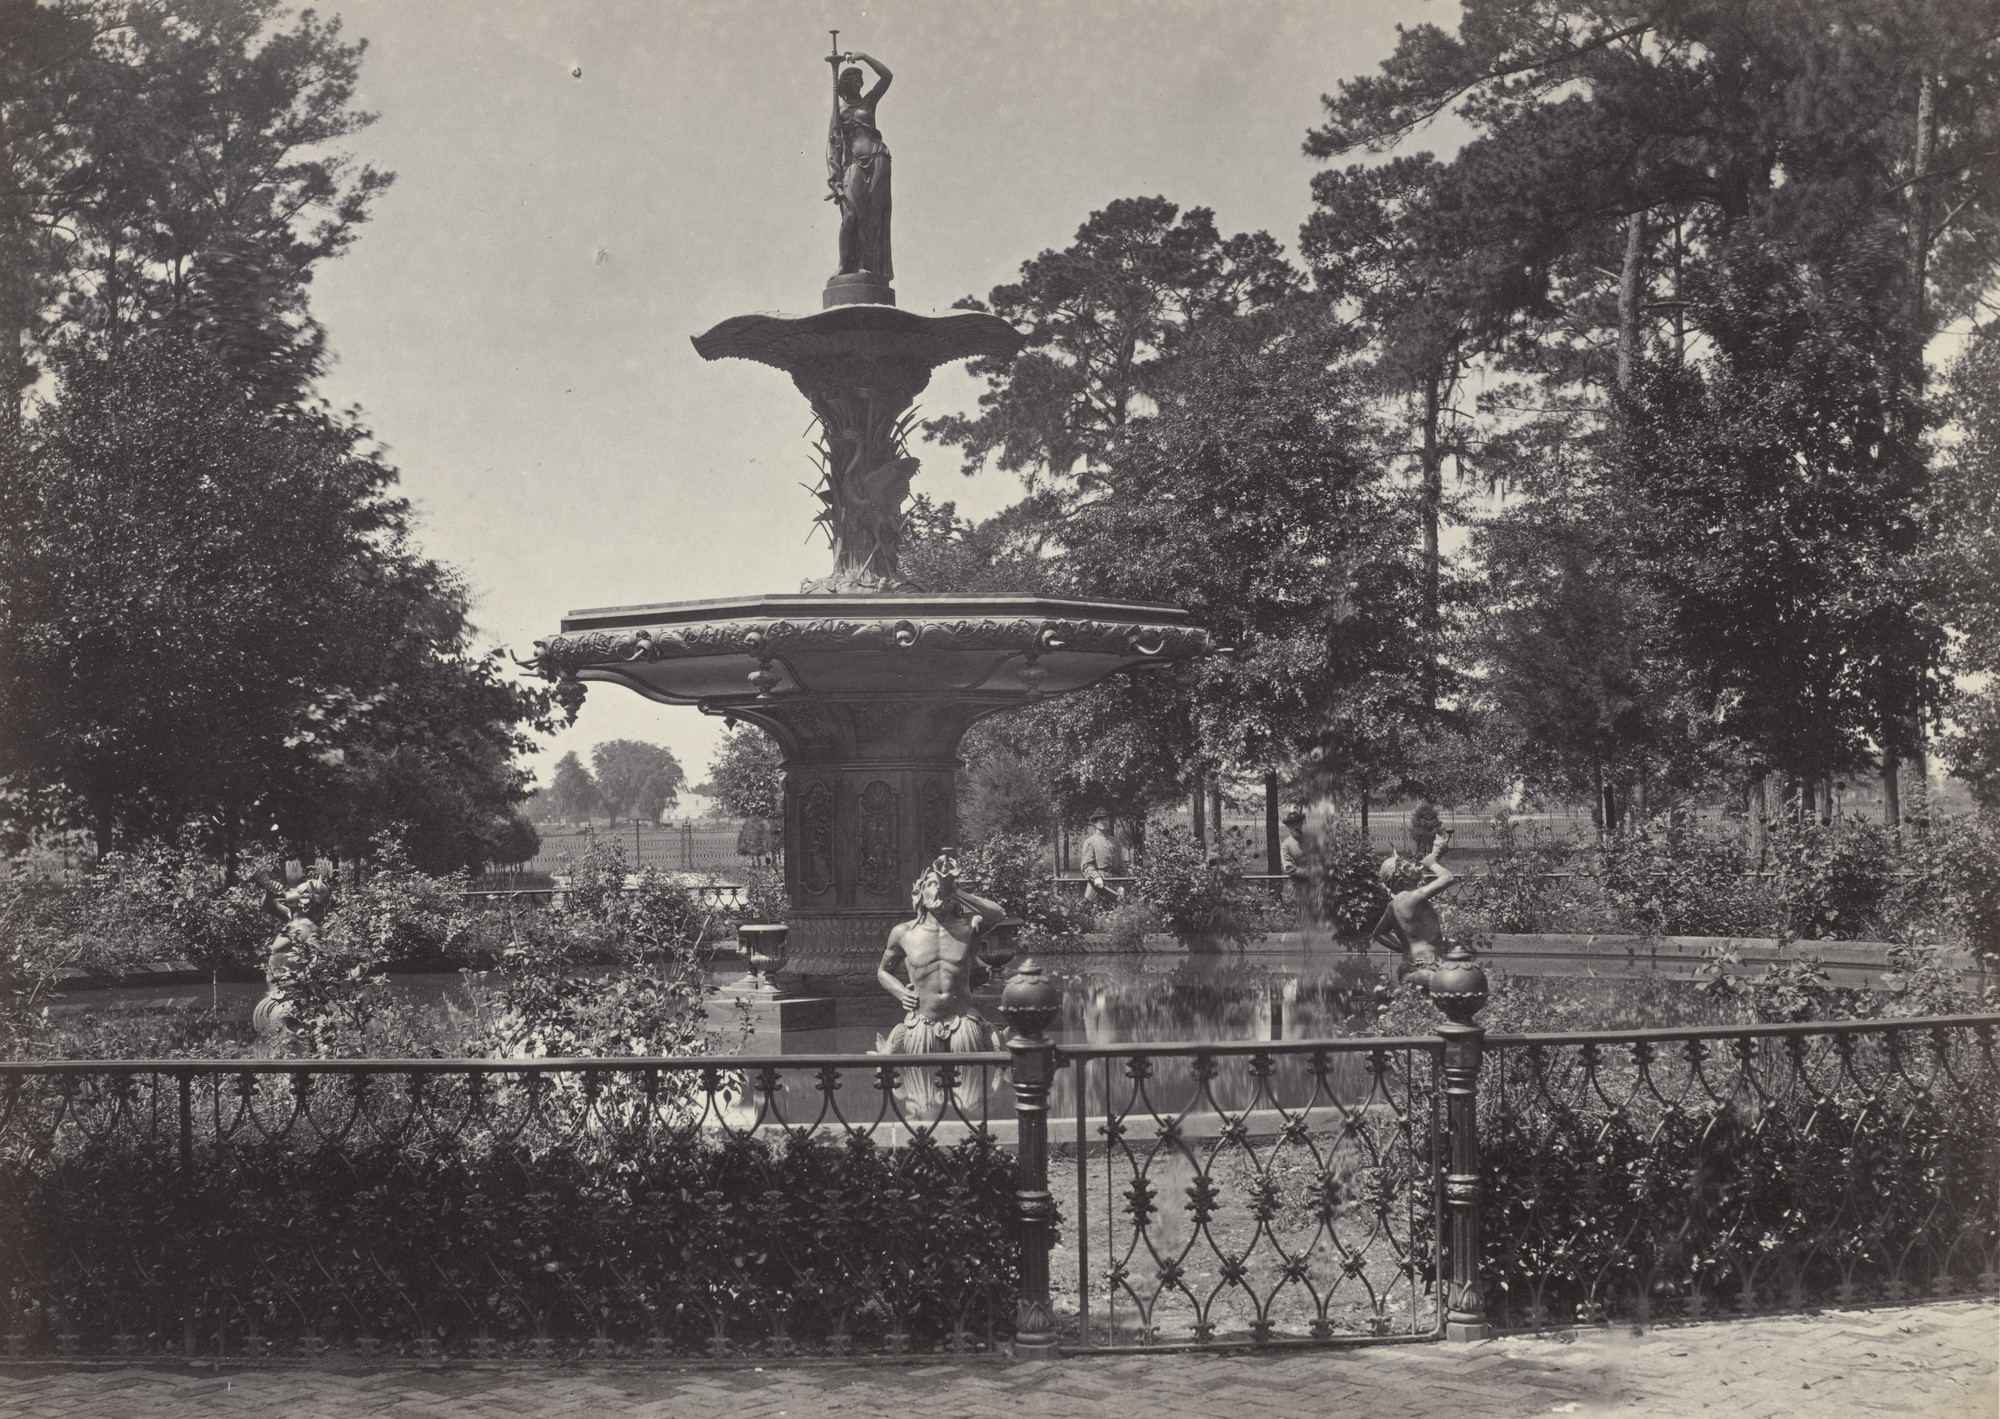 George Barnard. Fountain and Park, Savannah from the album Photographic Views of Sherman's Campaign. 1864-65